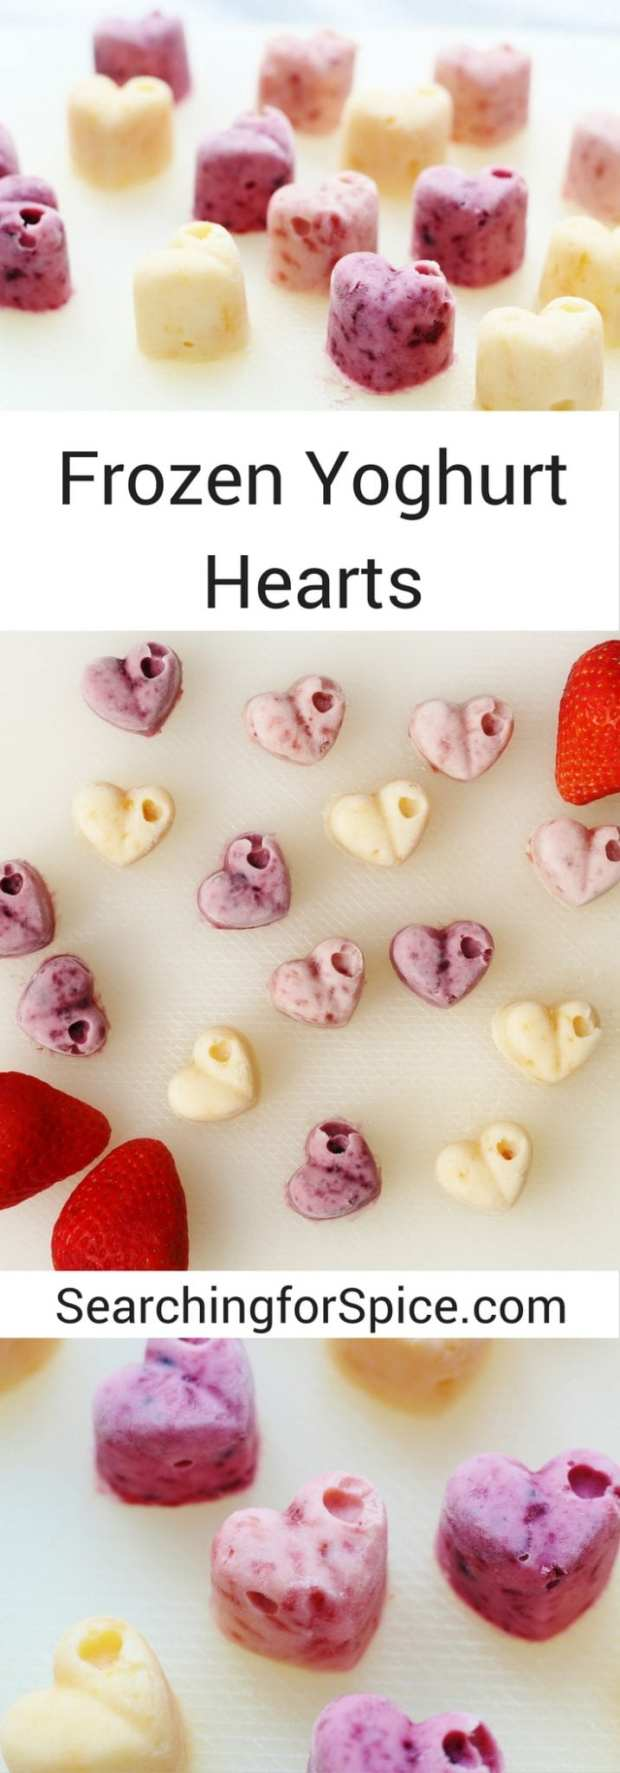 Frozen Yoghurt Hearts. Perfect sweet frozen treat for Valentine's Day and fun and easy to make with your children